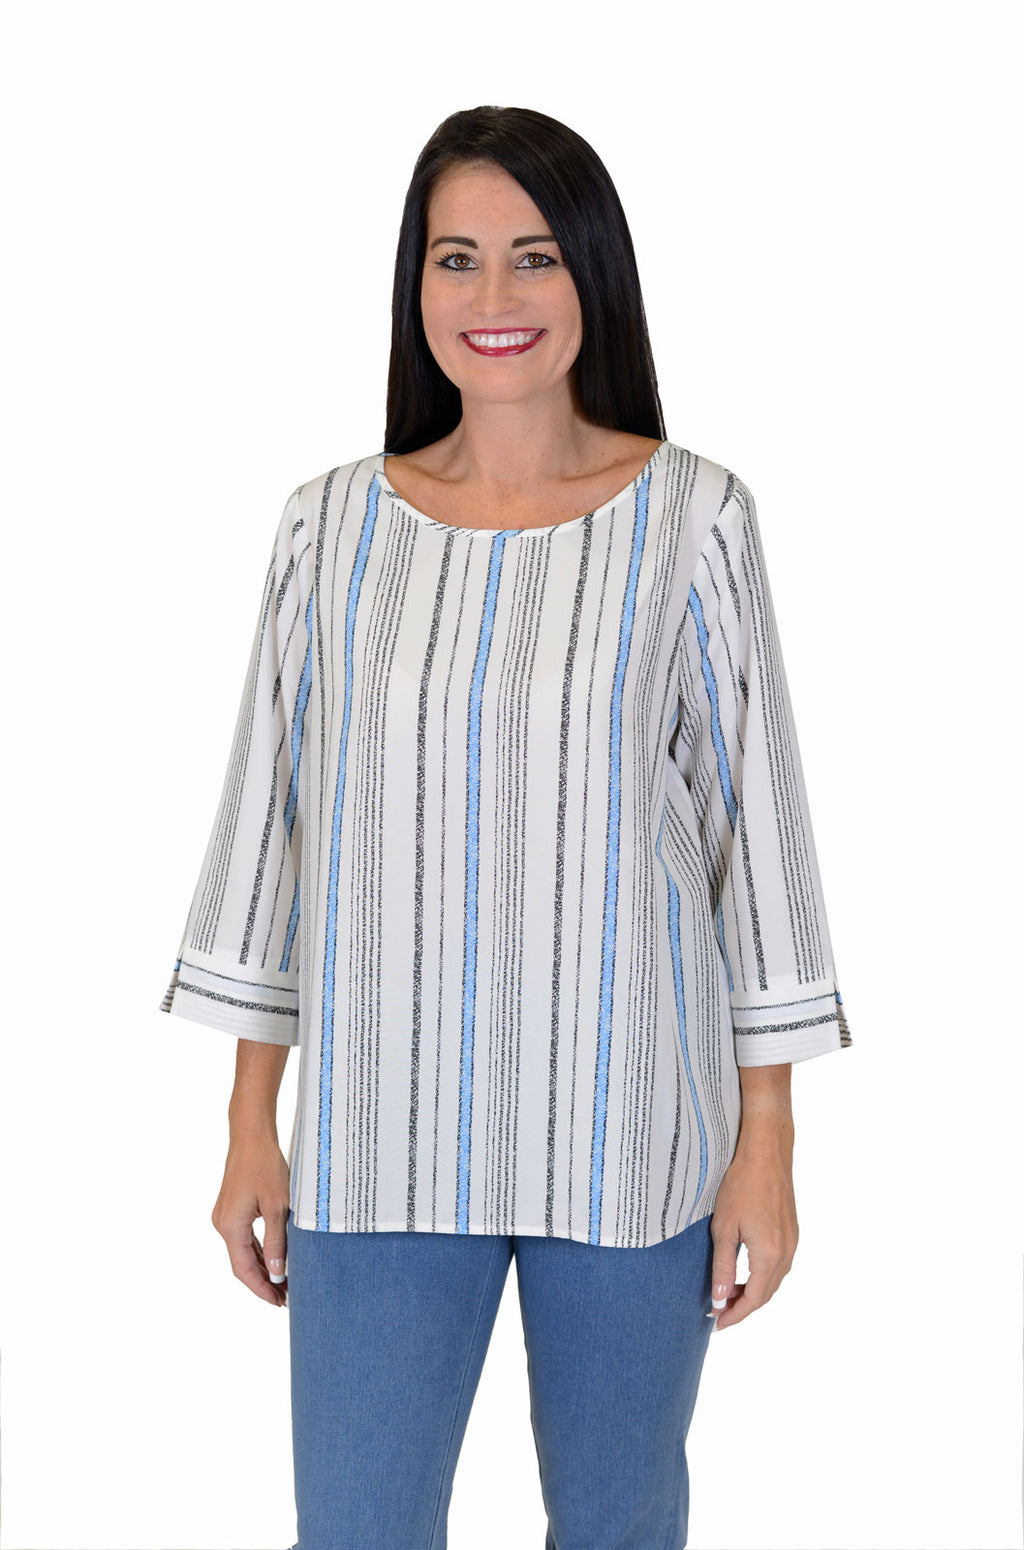 Cali Girls Sally Stripe Boxy Shirt